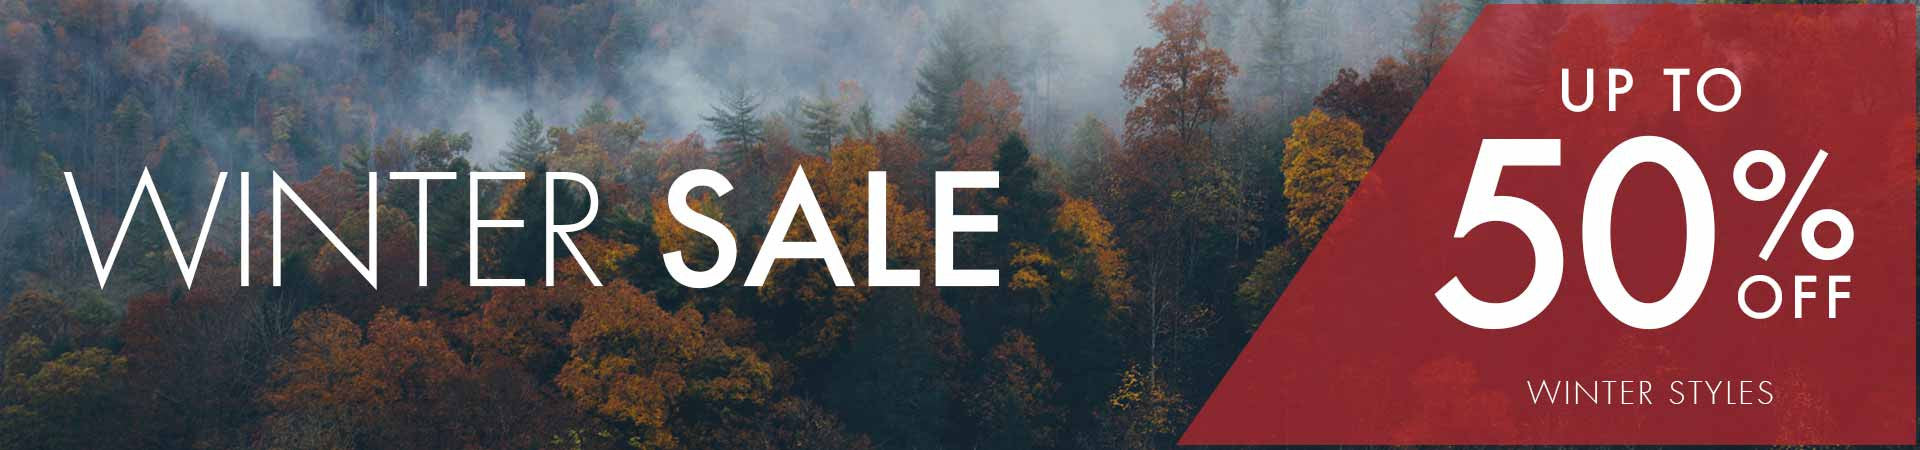 Winter Sale | up to 50% off winter styles